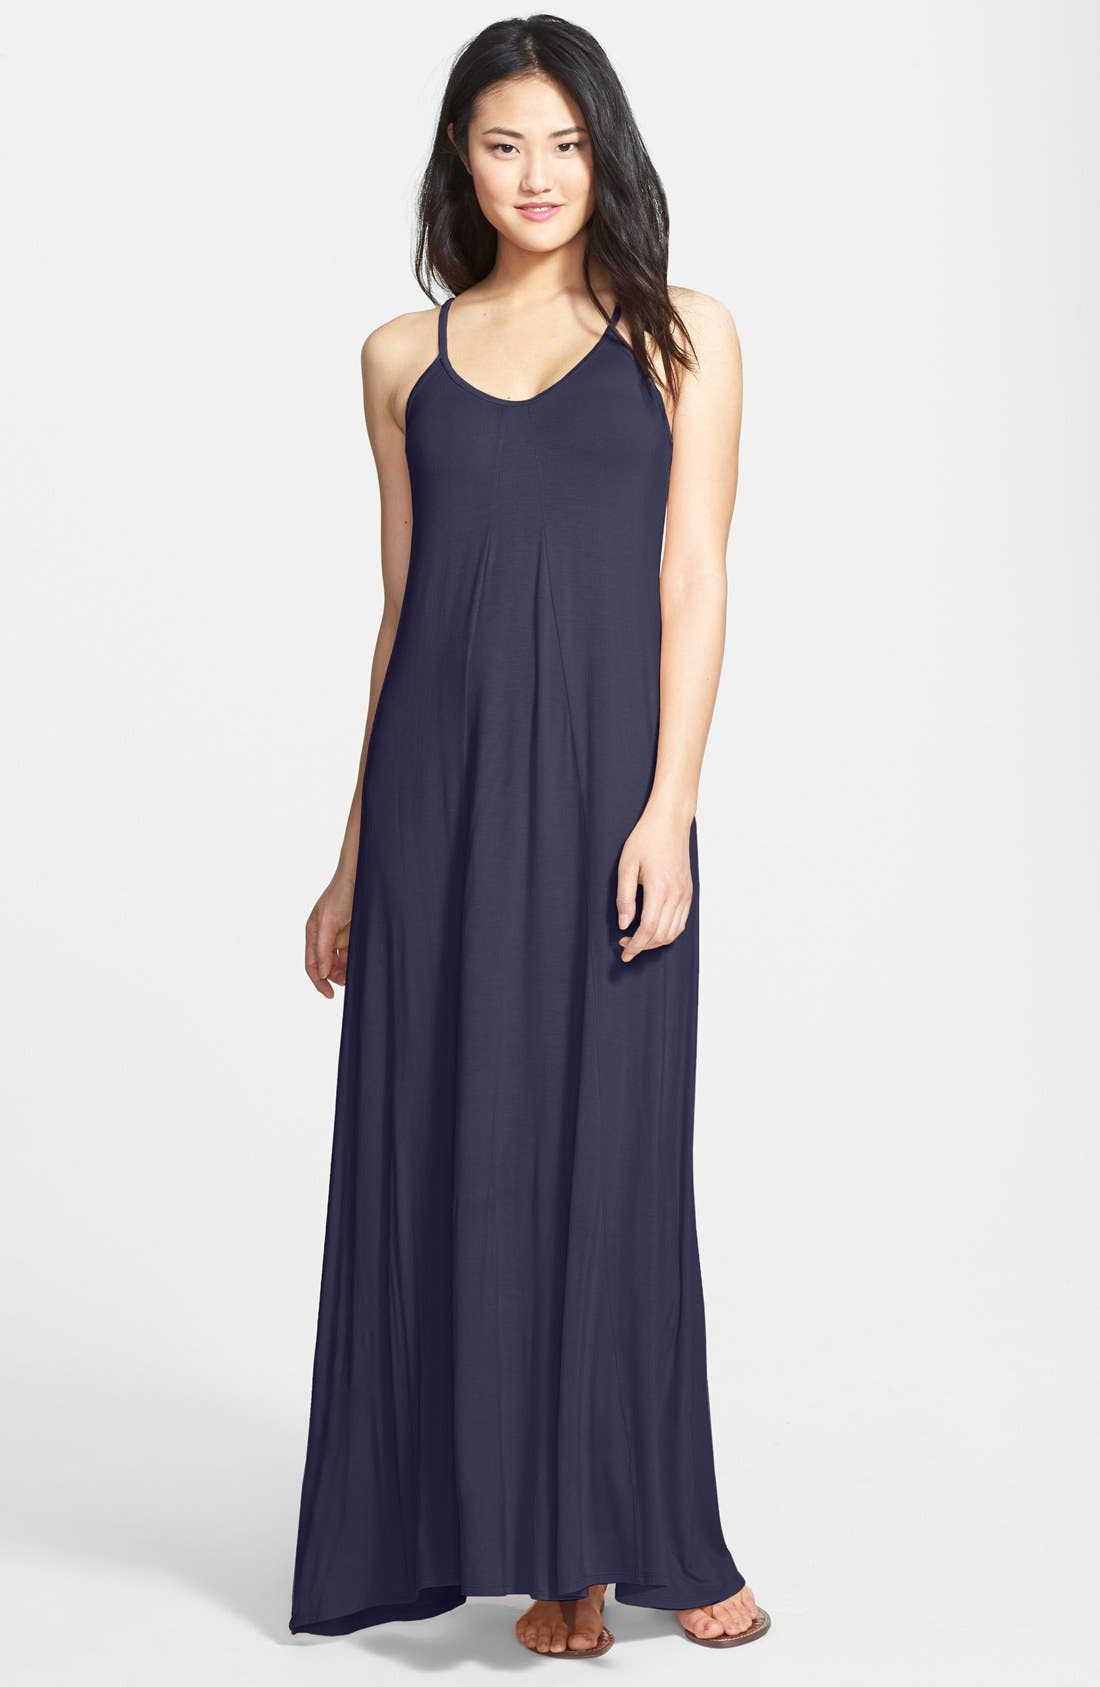 Loveappella Maxi Dress (Regular & Petite)